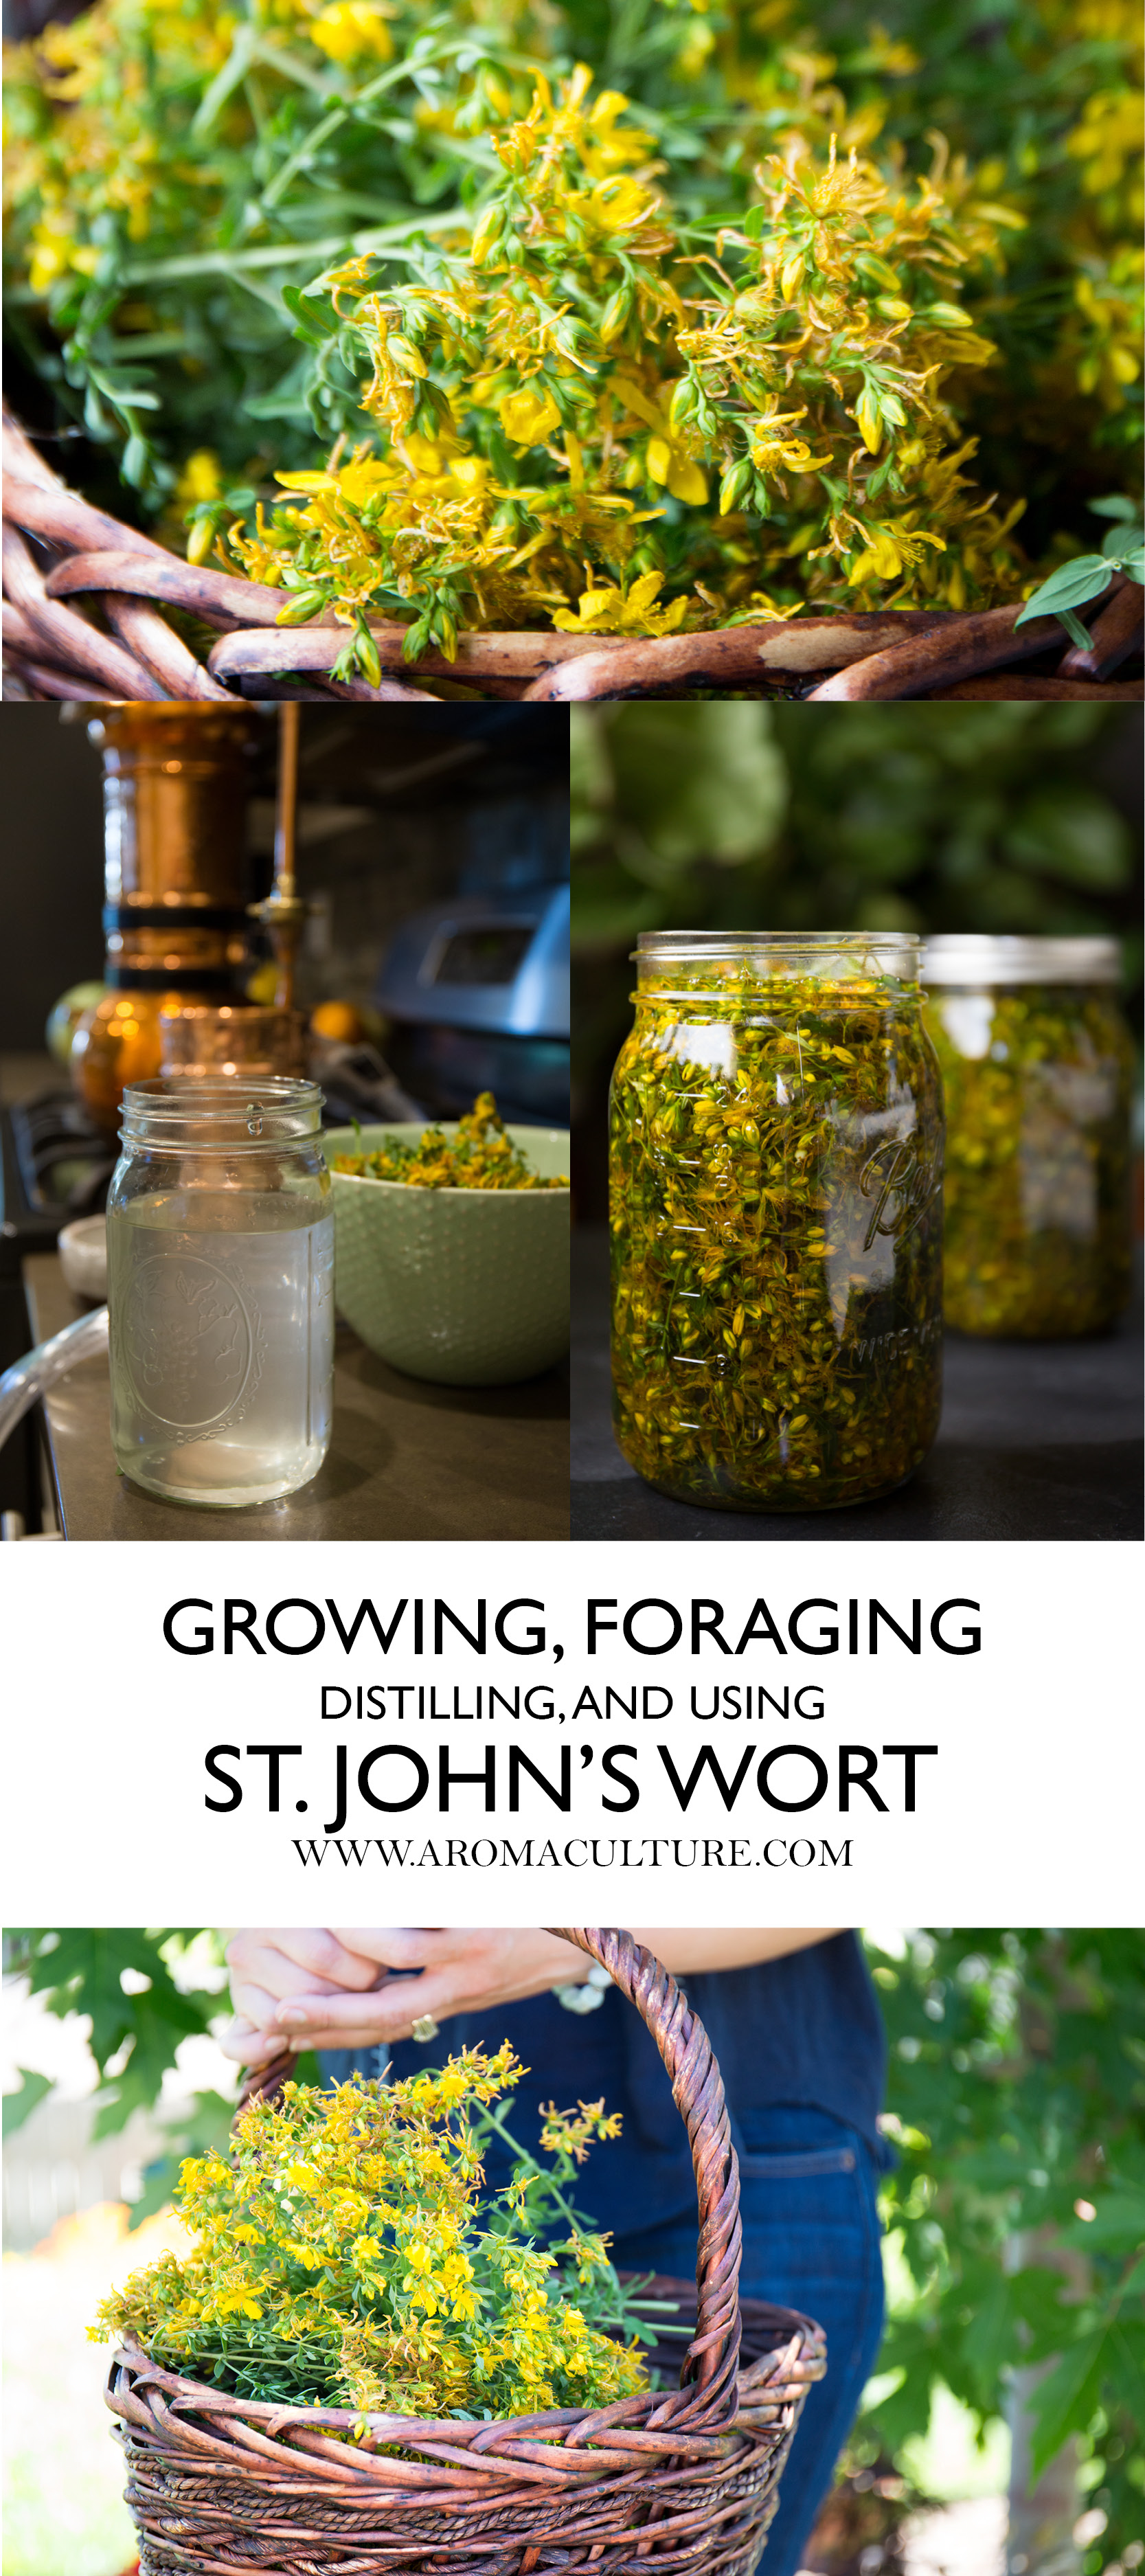 GROWING, FORAGING, DISTILLING AND USING ST JOHNS WORT AROMACULTURE.jpg